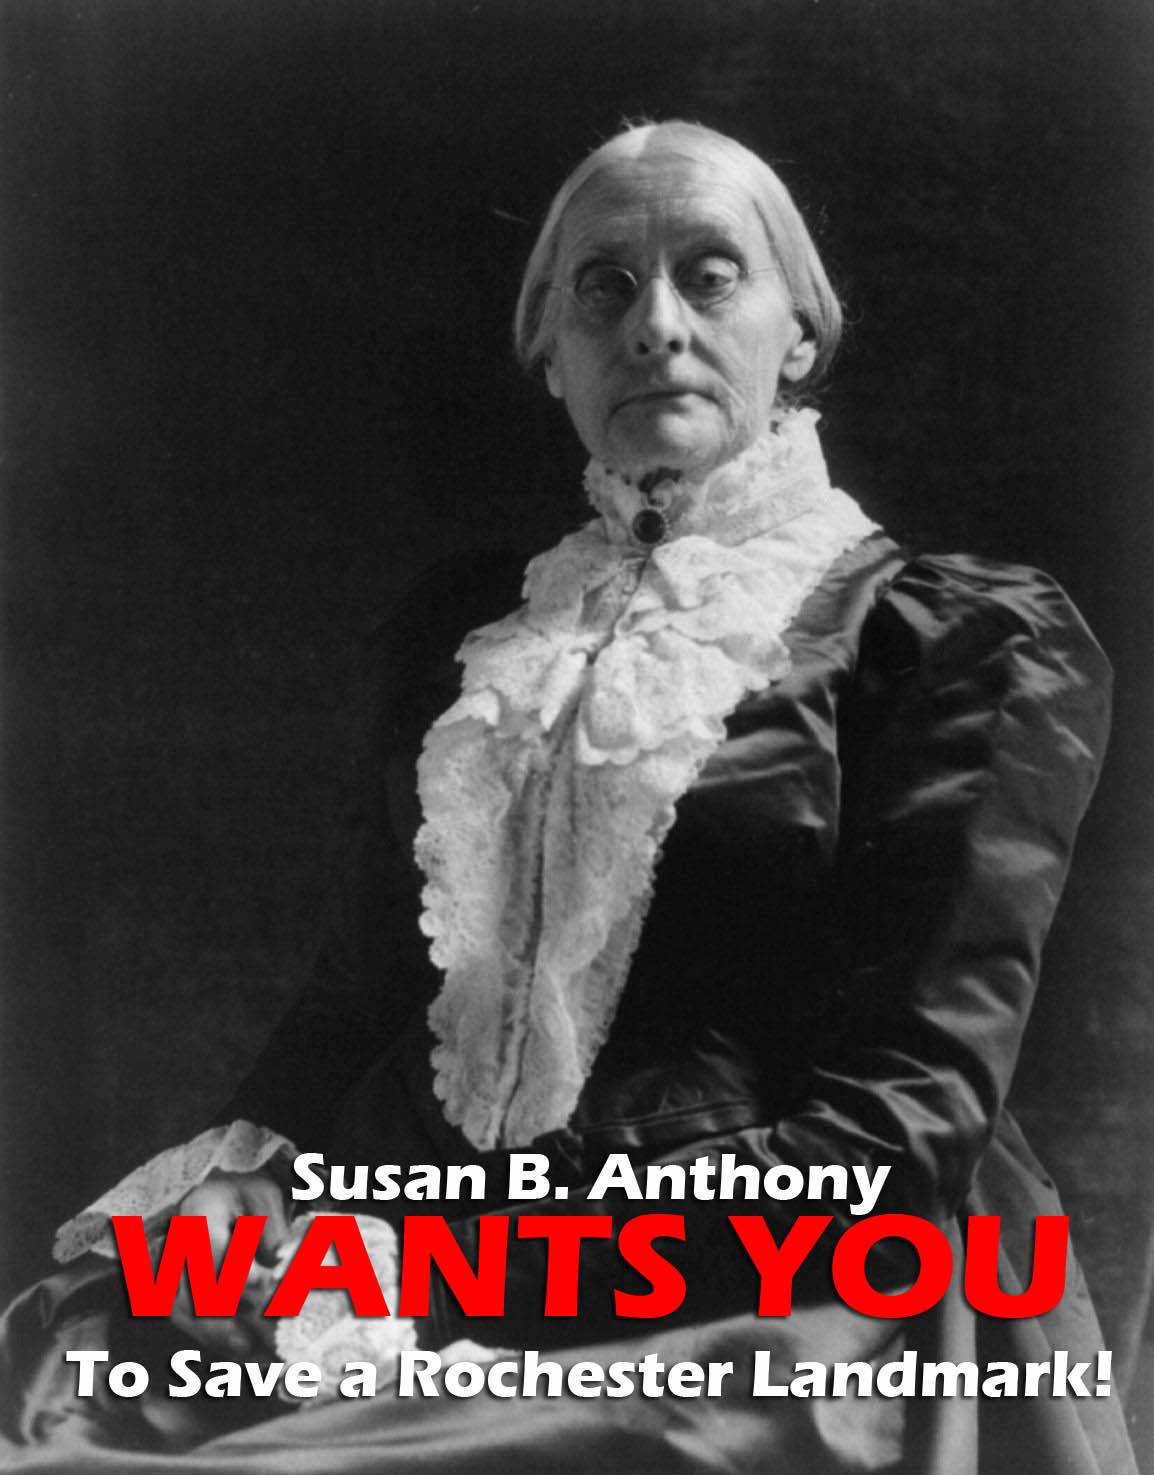 Susan B. Anthony wants you. She's asking for volunteers to gather support to save a neighborhood landmark.